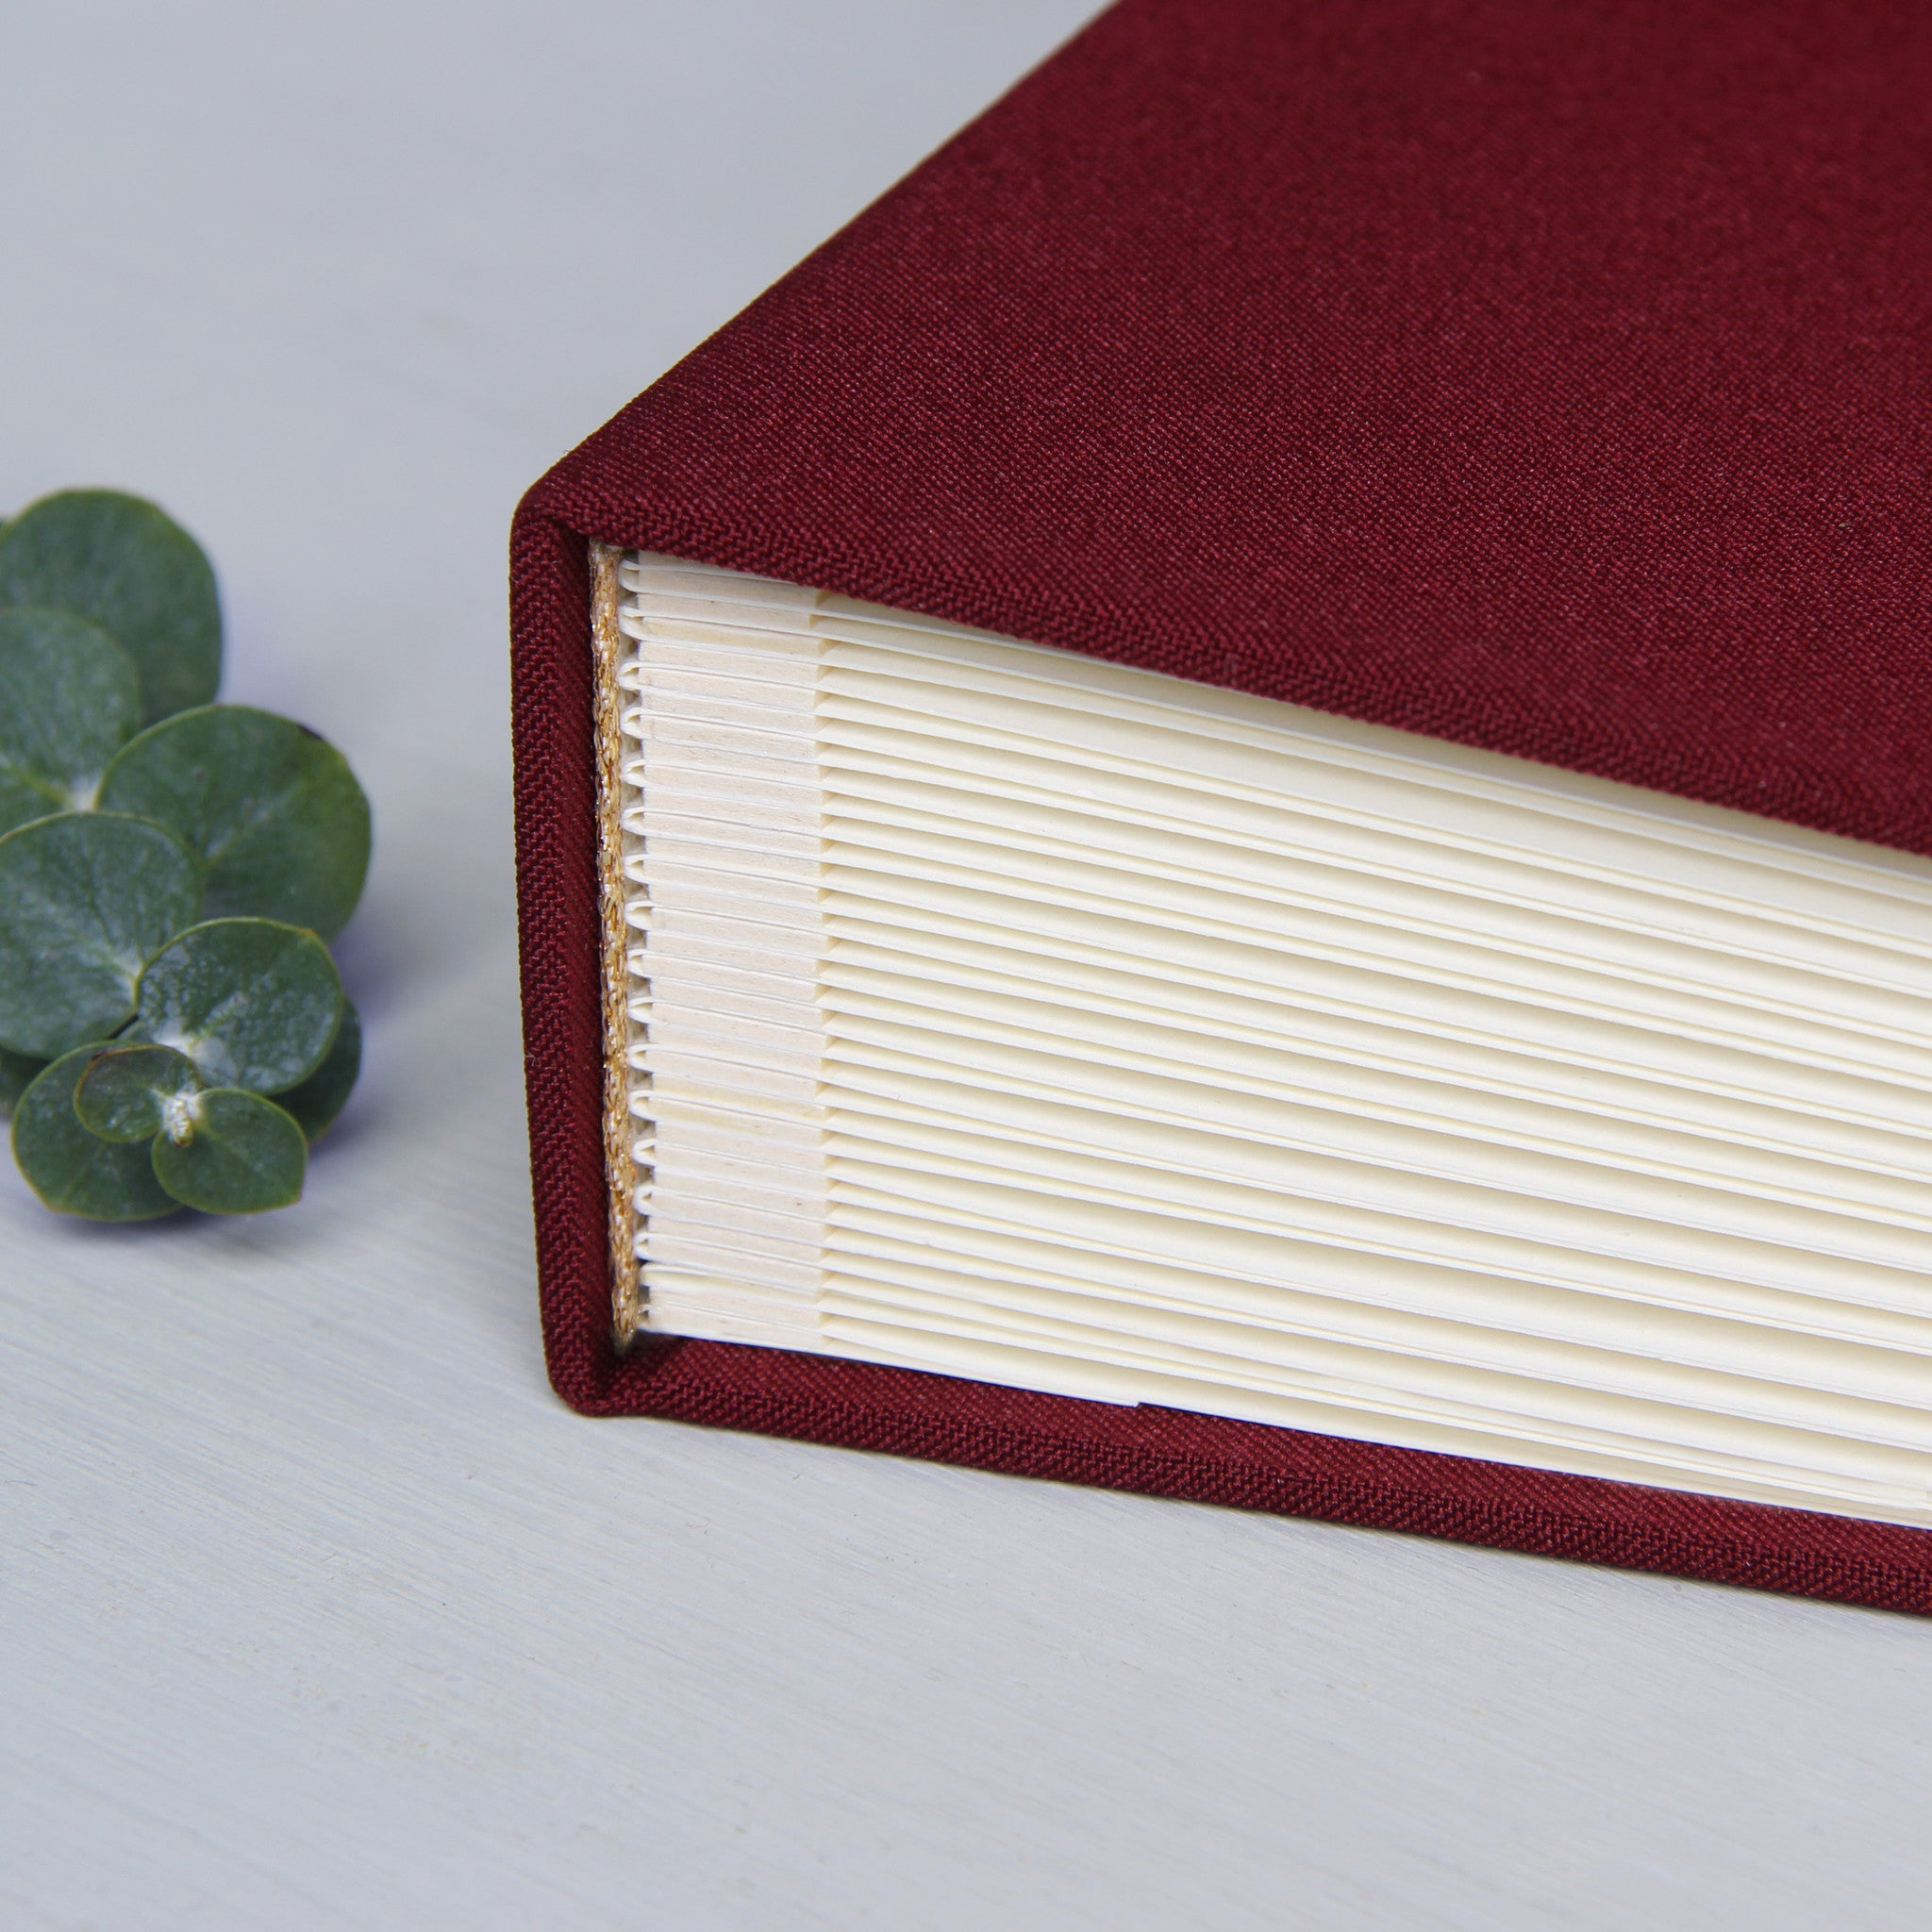 Pocket Guest Book: Instant Wedding Guest Book Album Marsala With Gold